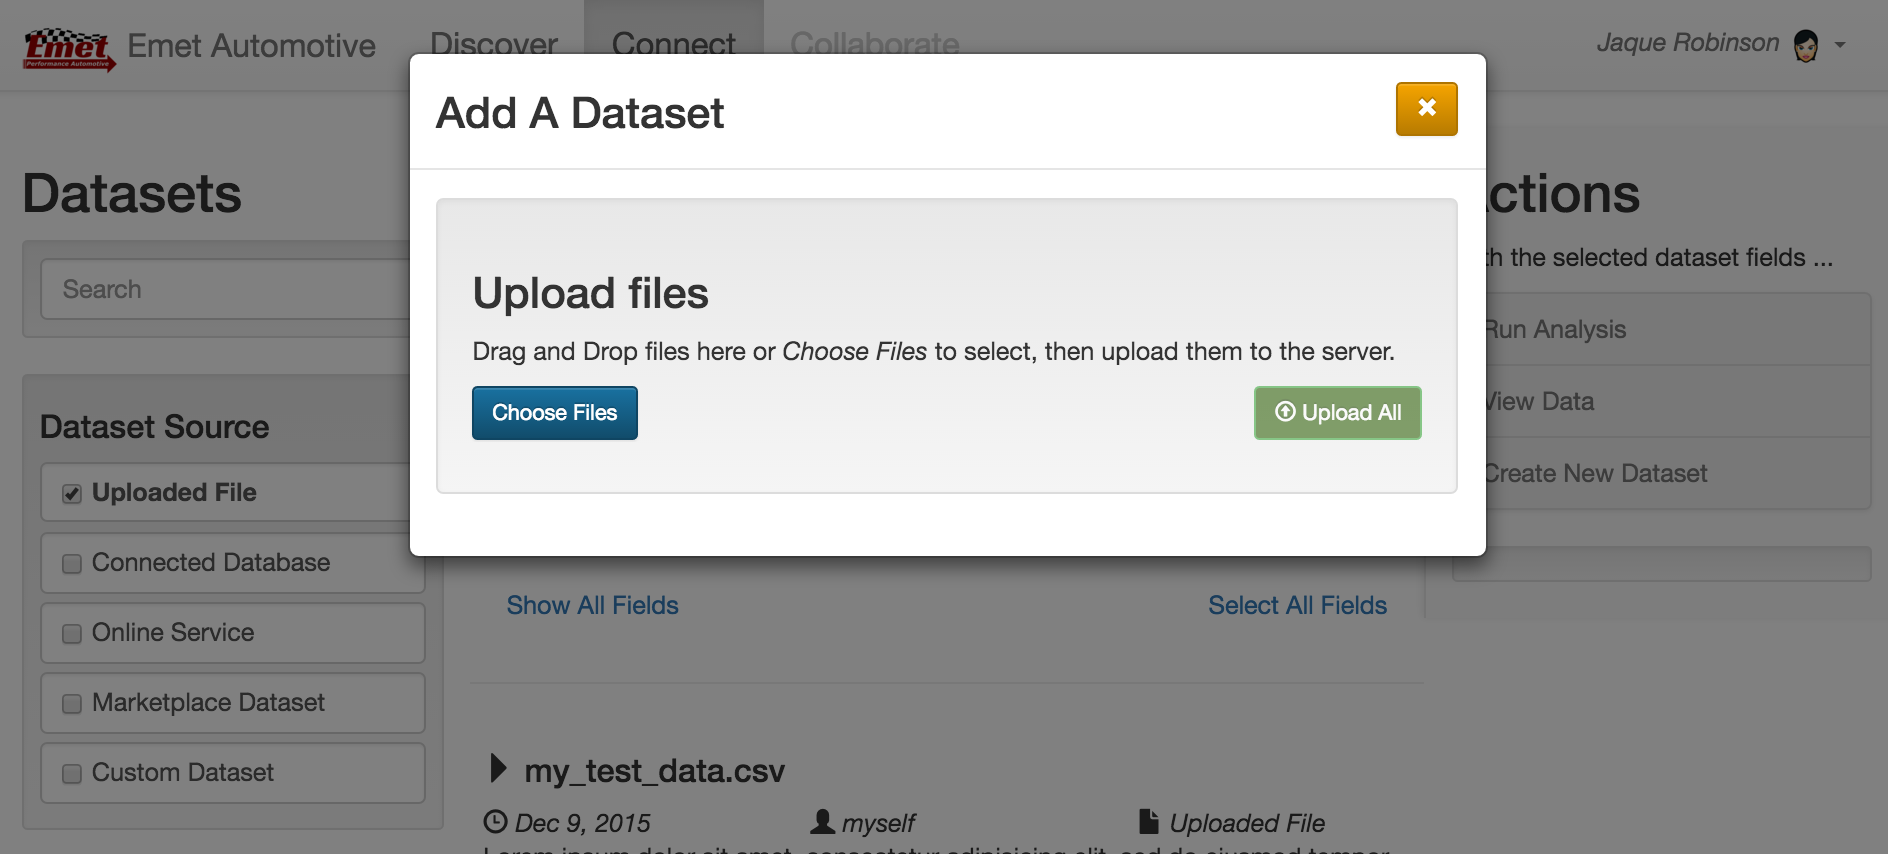 This screen shot of the MVP shows the upload interface for adding private company datasets.